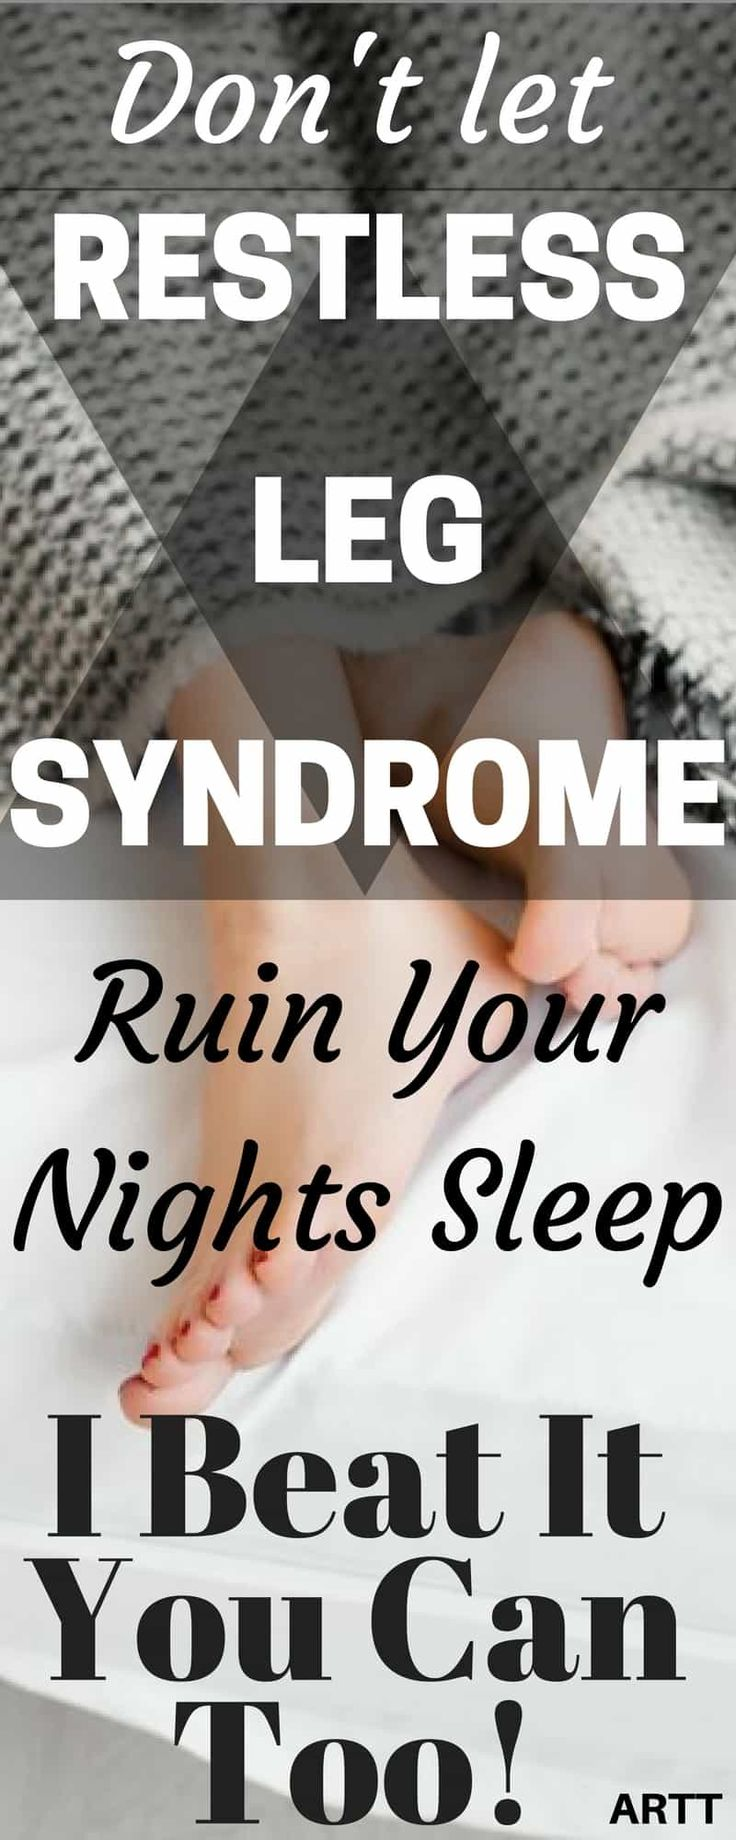 Relief from Restless Leg Syndrome Symptoms | Don't Let RLS Ruin Your Night's Sleep | restless leg syndrome | restless leg syndrome remedies | restless leg syndrome essential oils | restless leg syndrome symptoms | restless leg syndrome relief | aroadtotravel.com